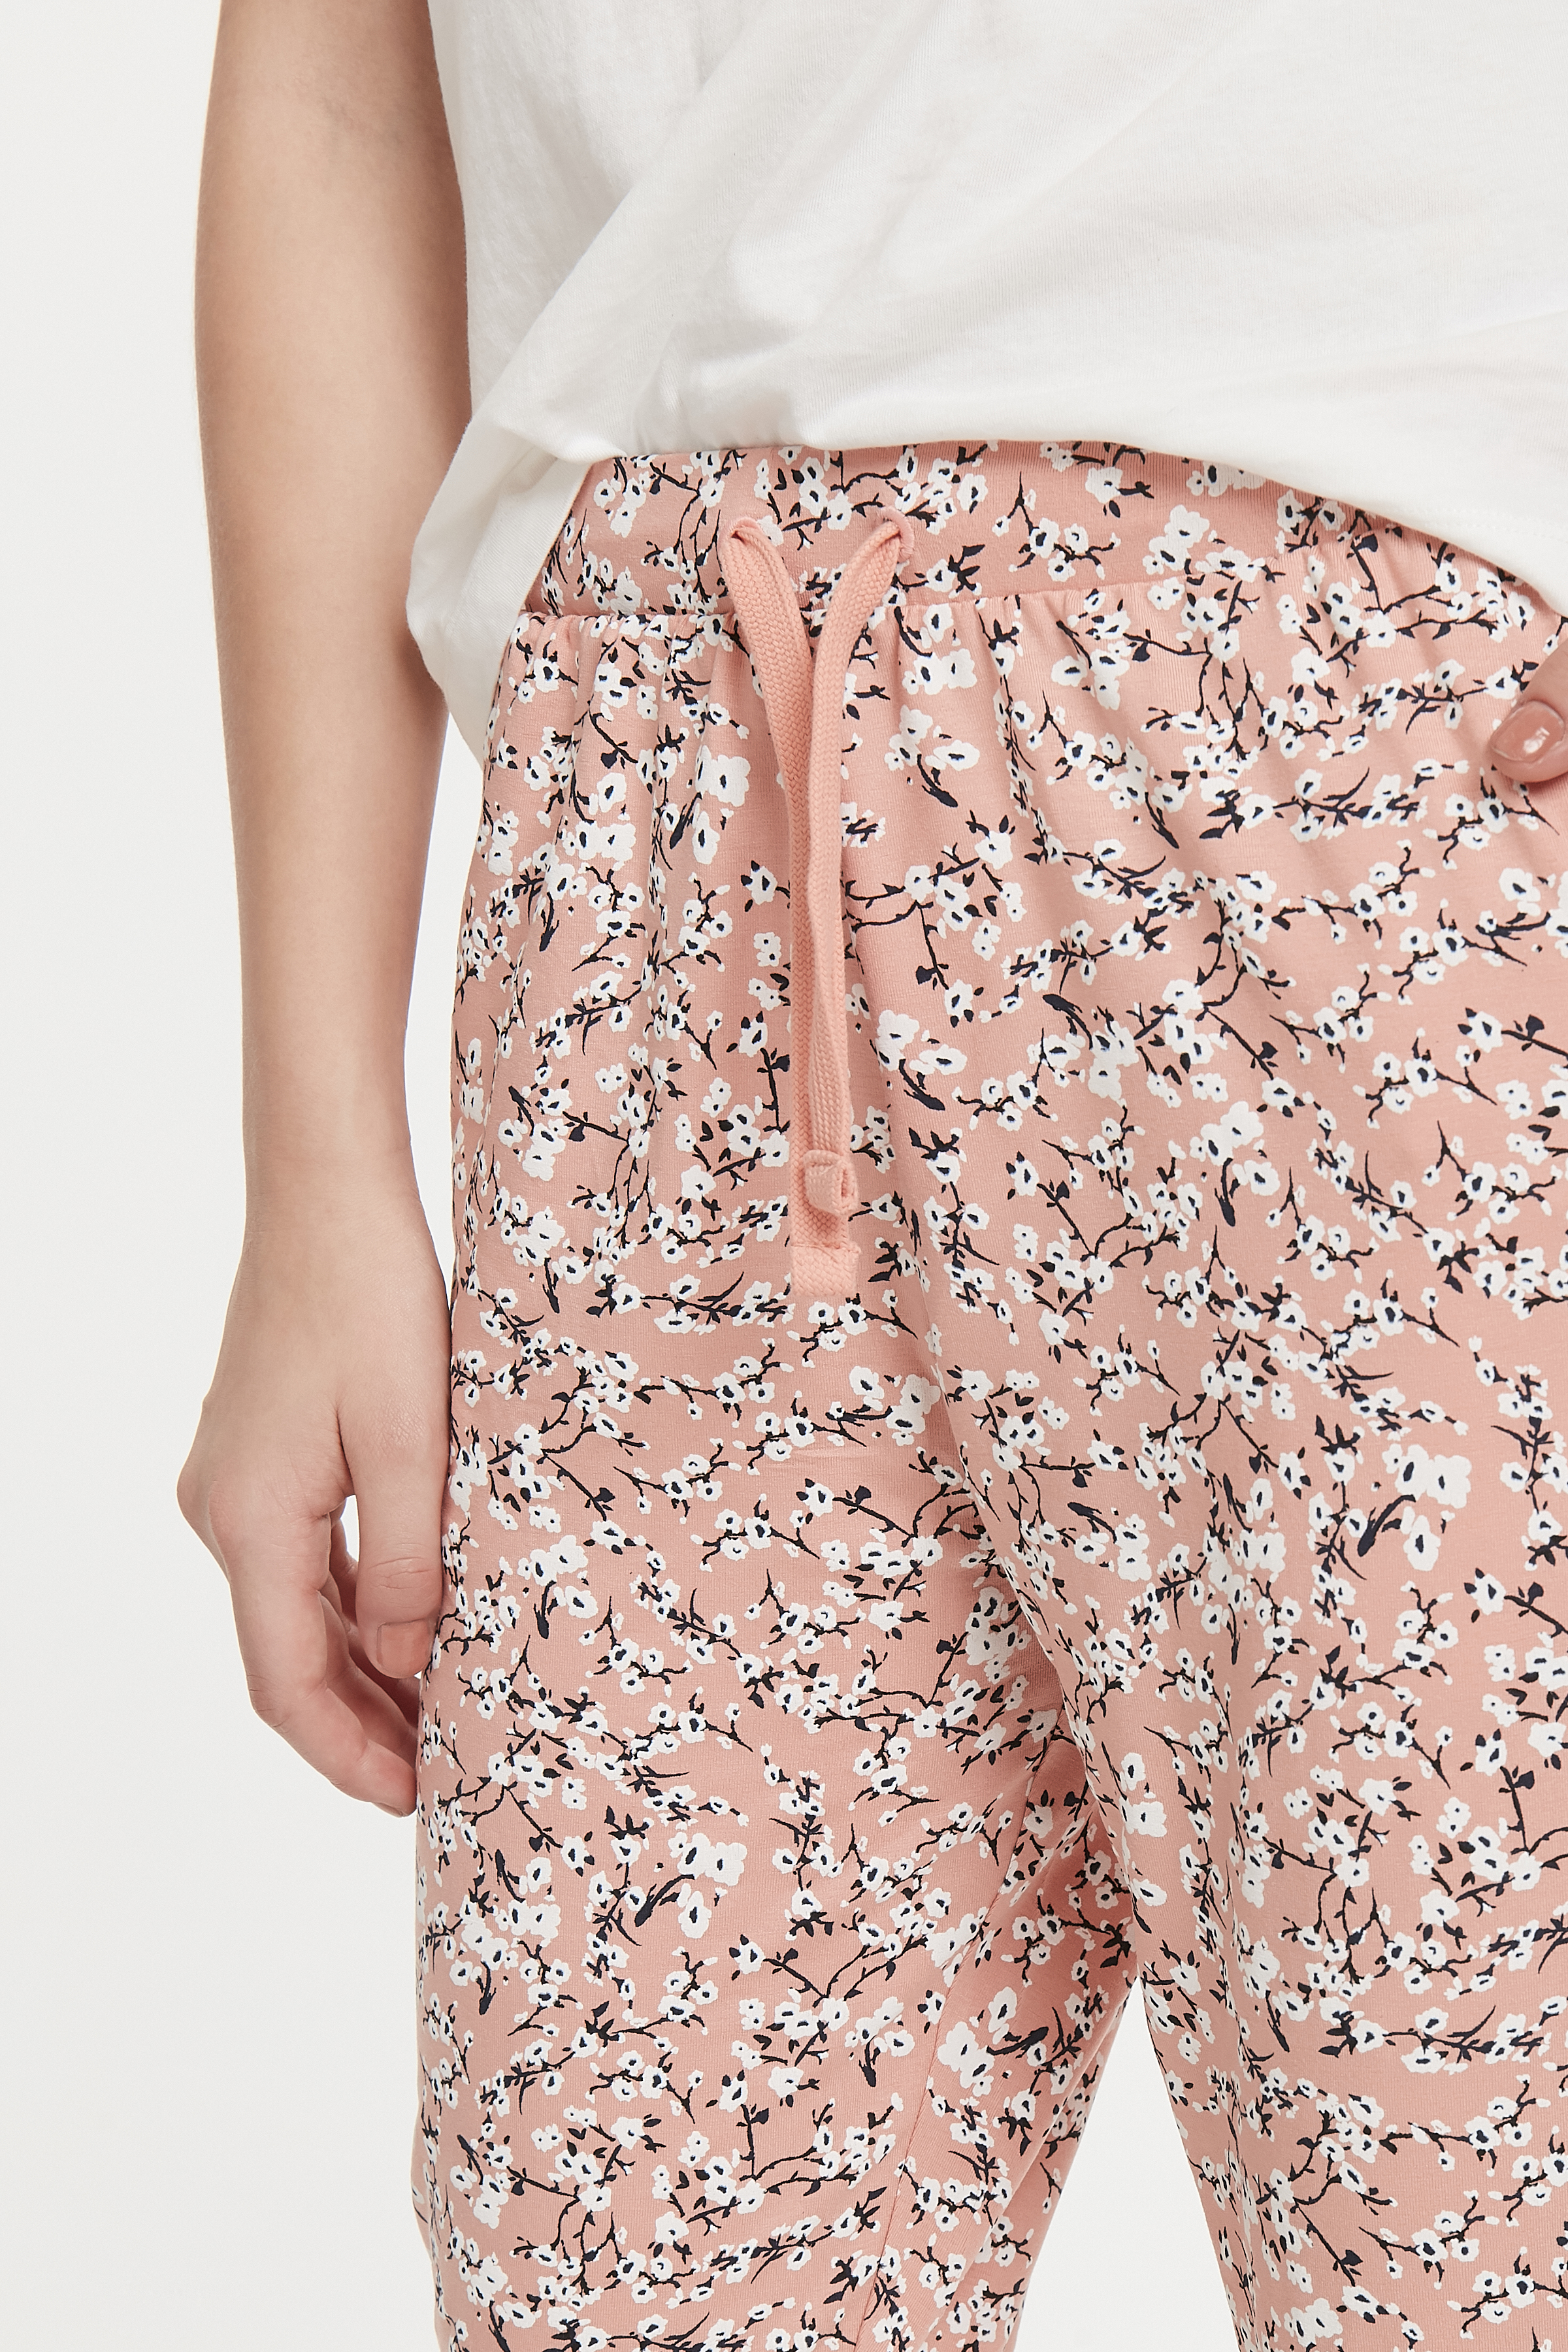 Coral Almond Pants Casual – Køb Coral Almond Pants Casual fra str. XS-XL her